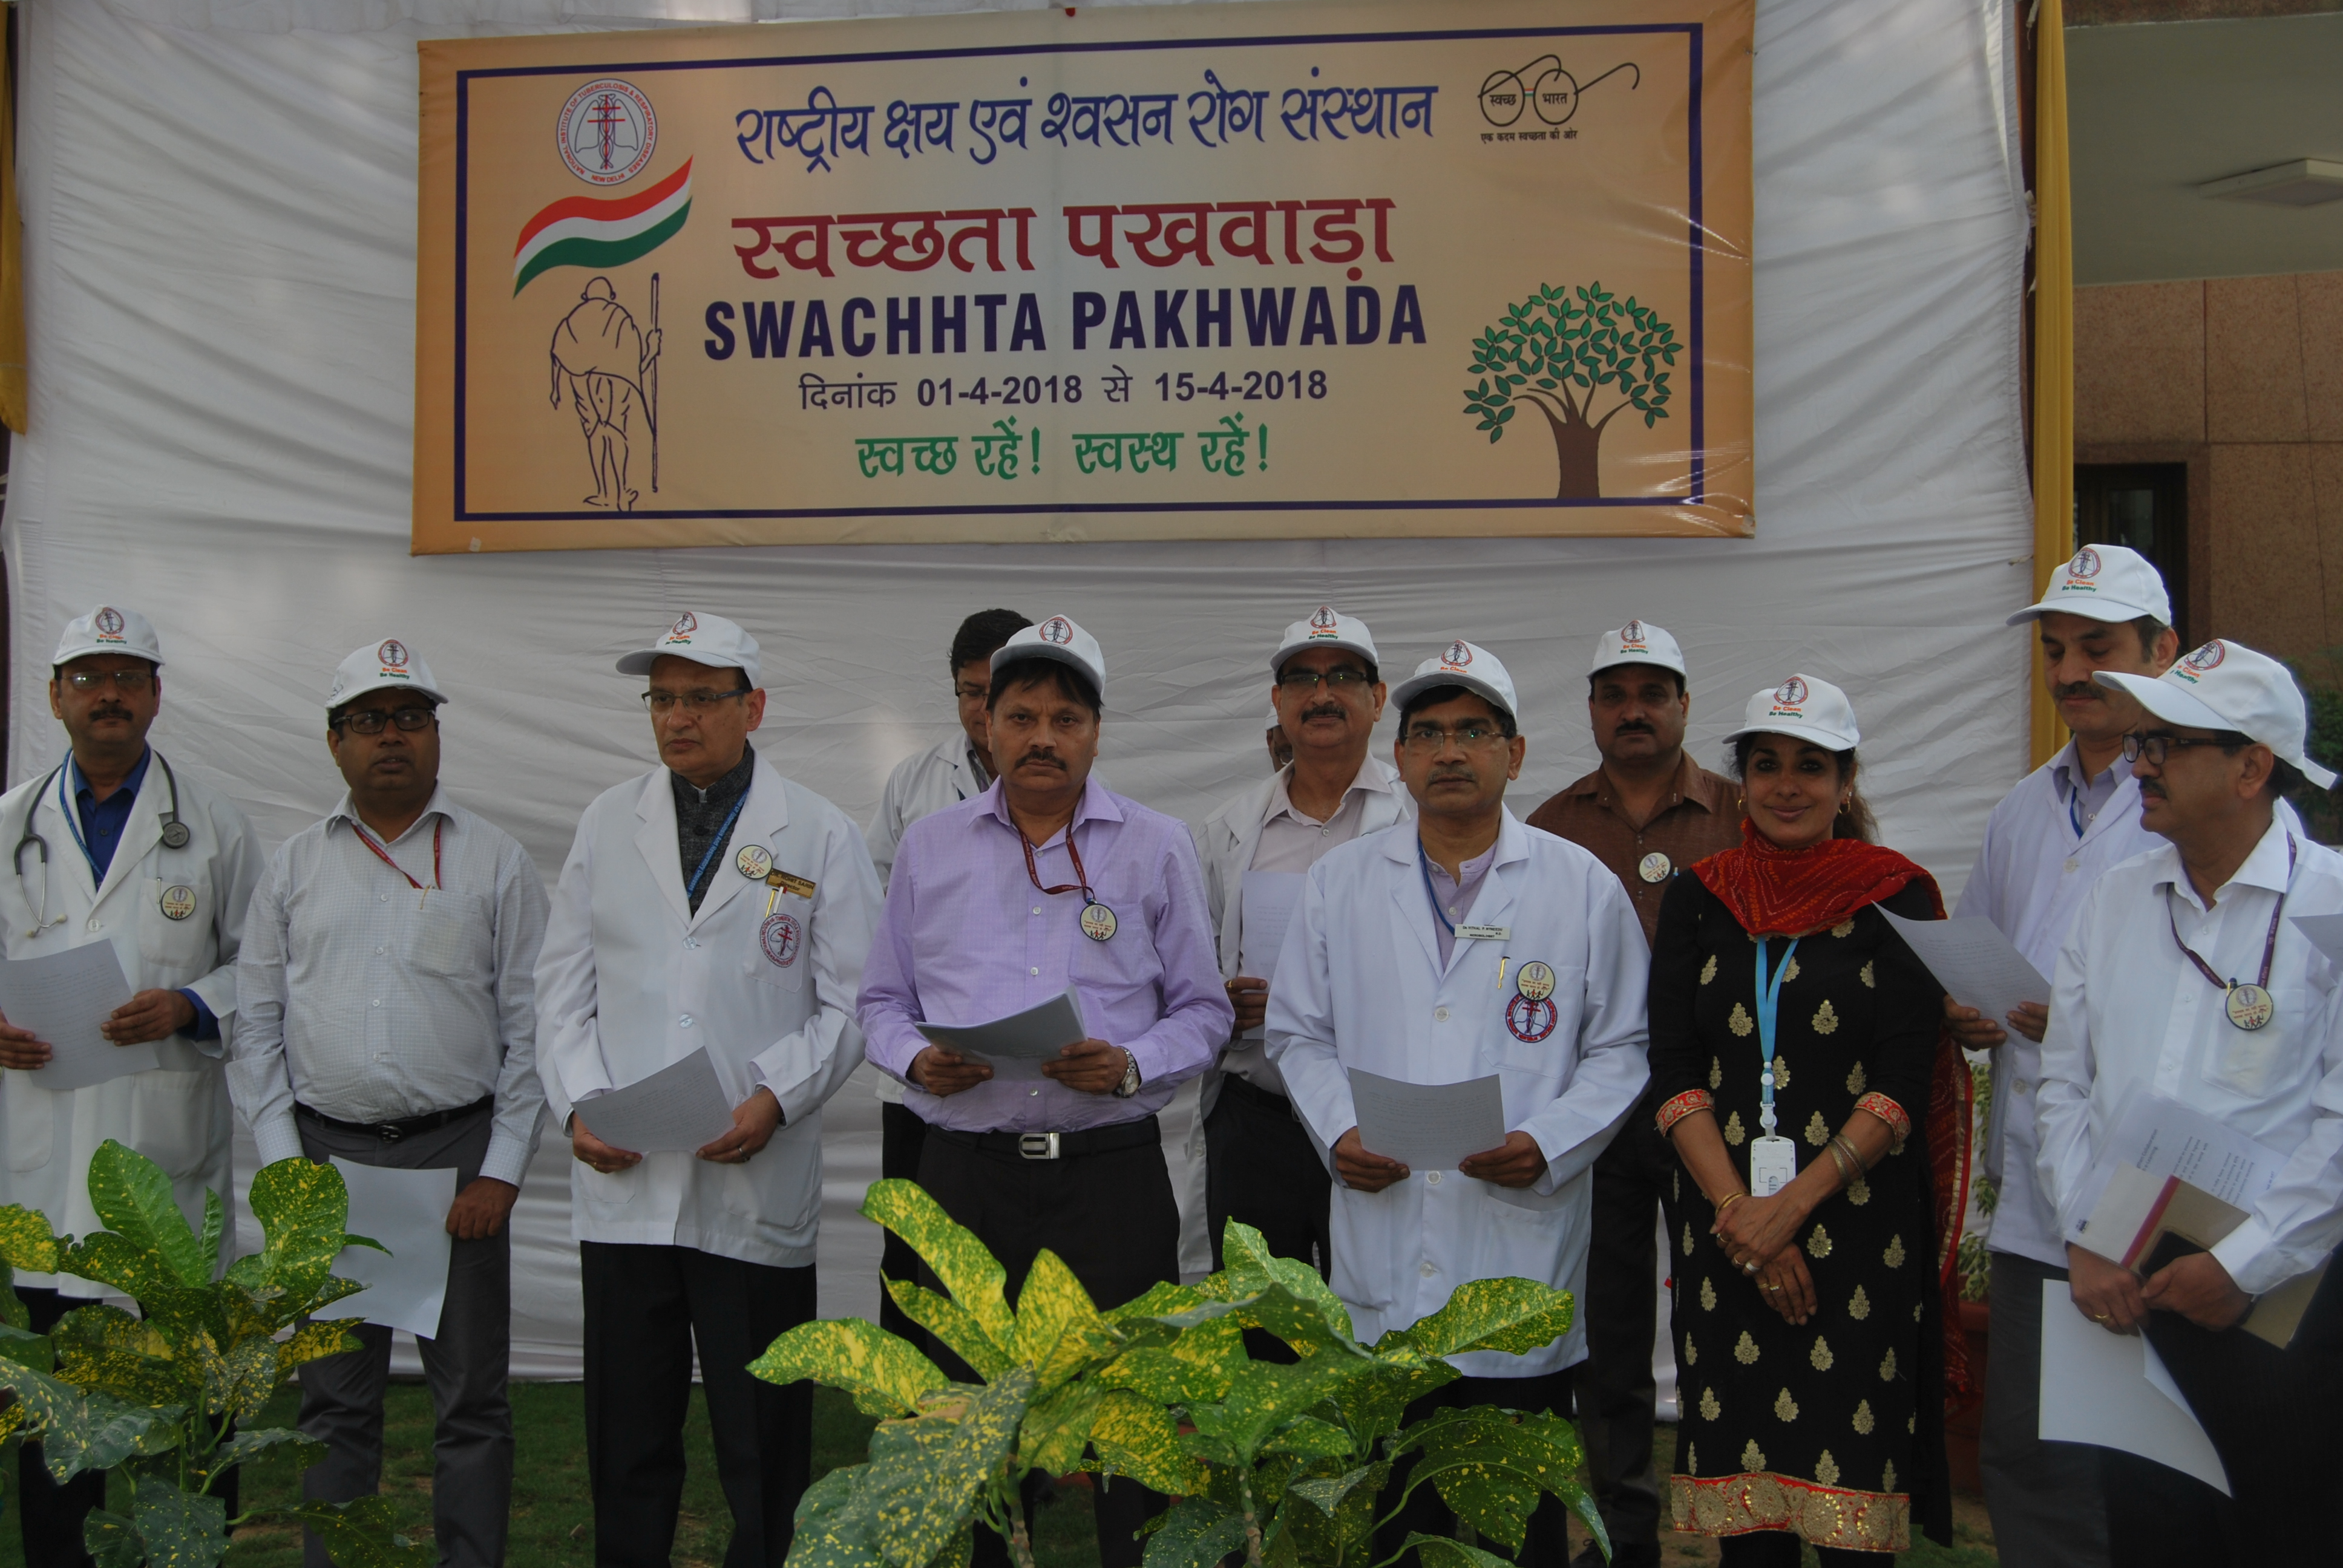 Swachhata_Pakhwada_April_2018